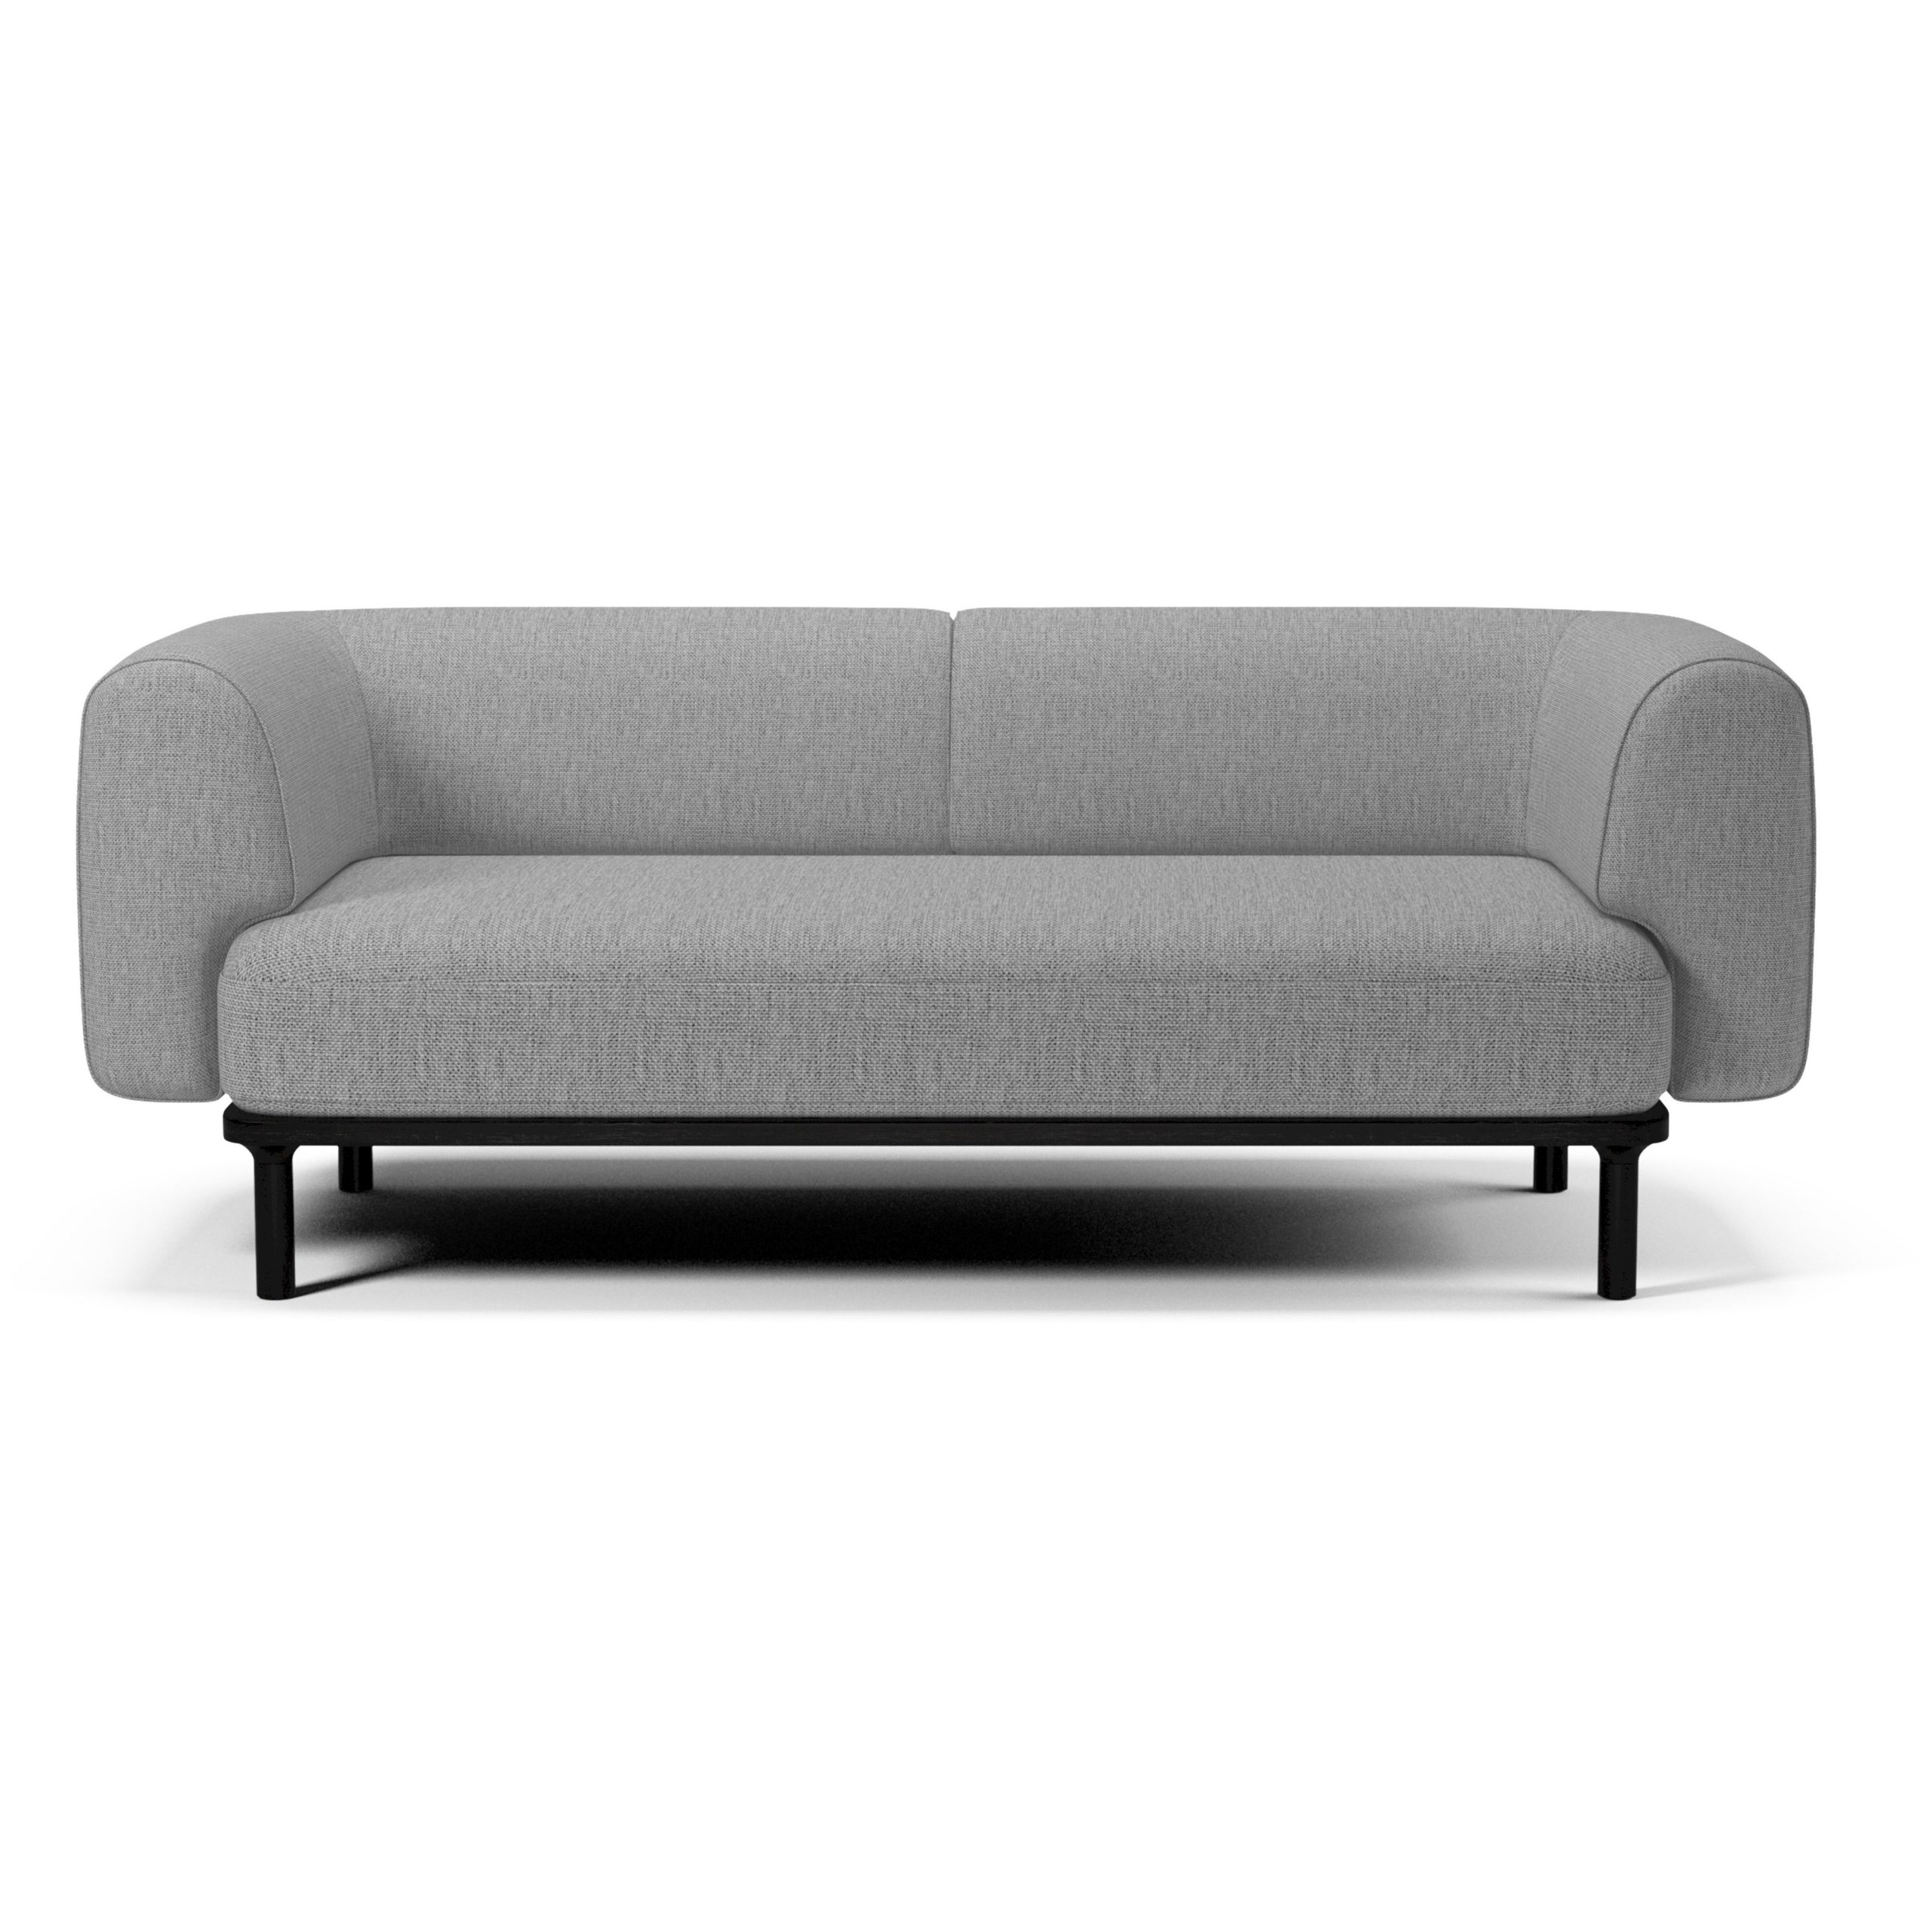 Abby 2 seater